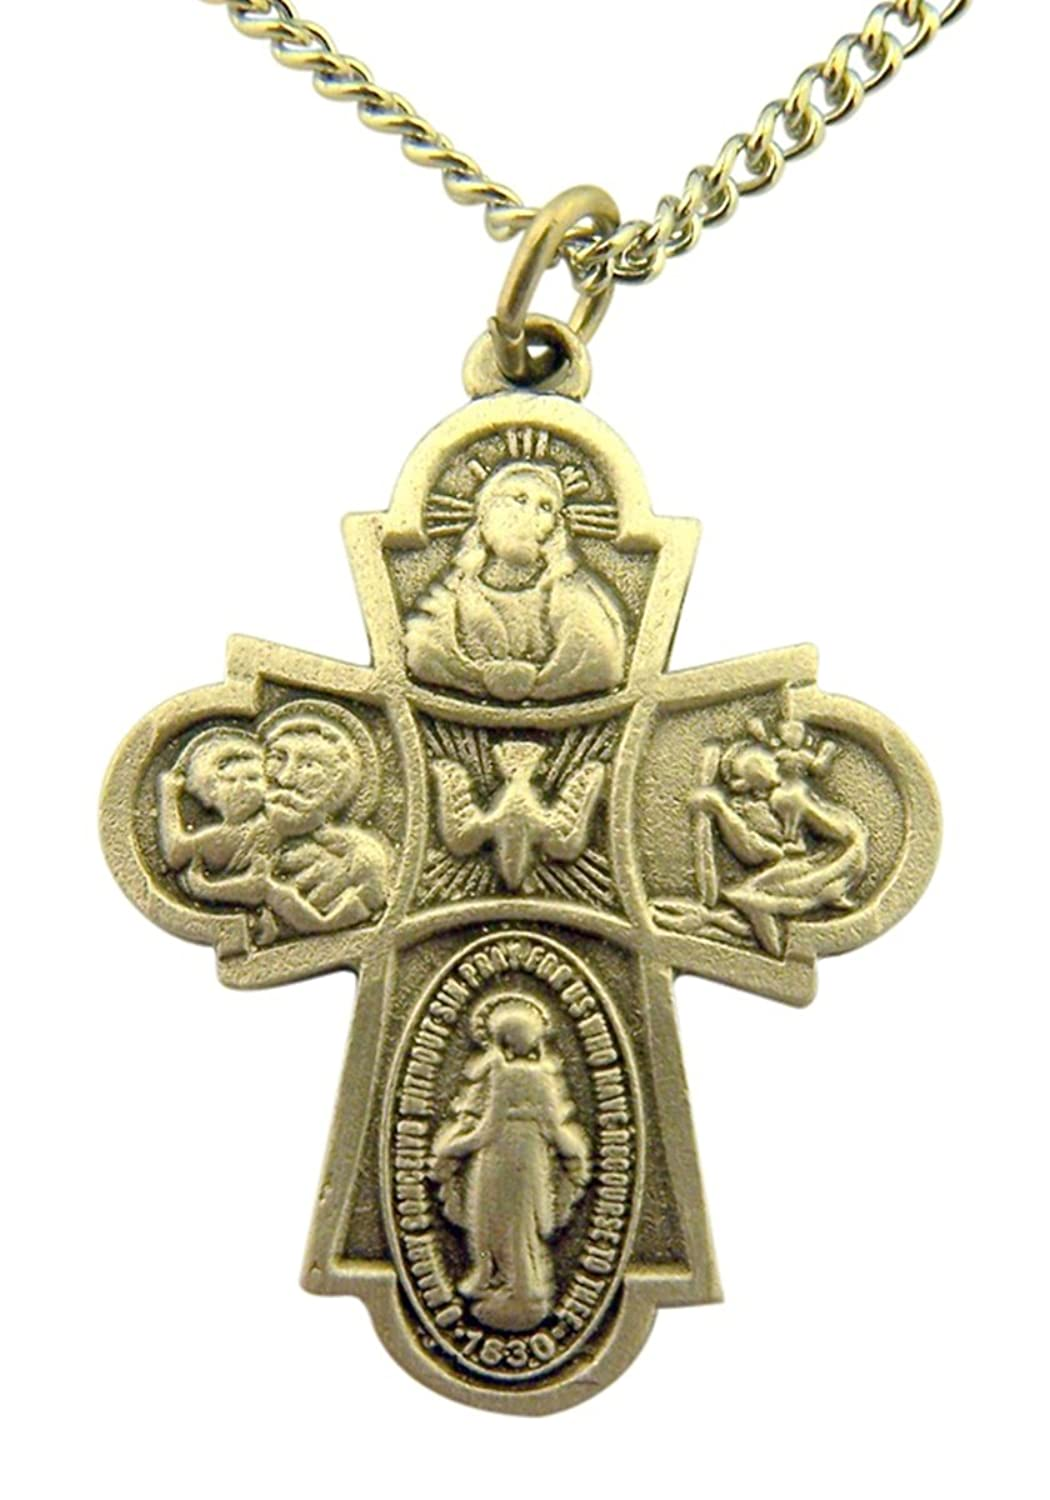 Pewter Four Way Cross Medal with I Am Catholic Back, 1 1/4 Inch